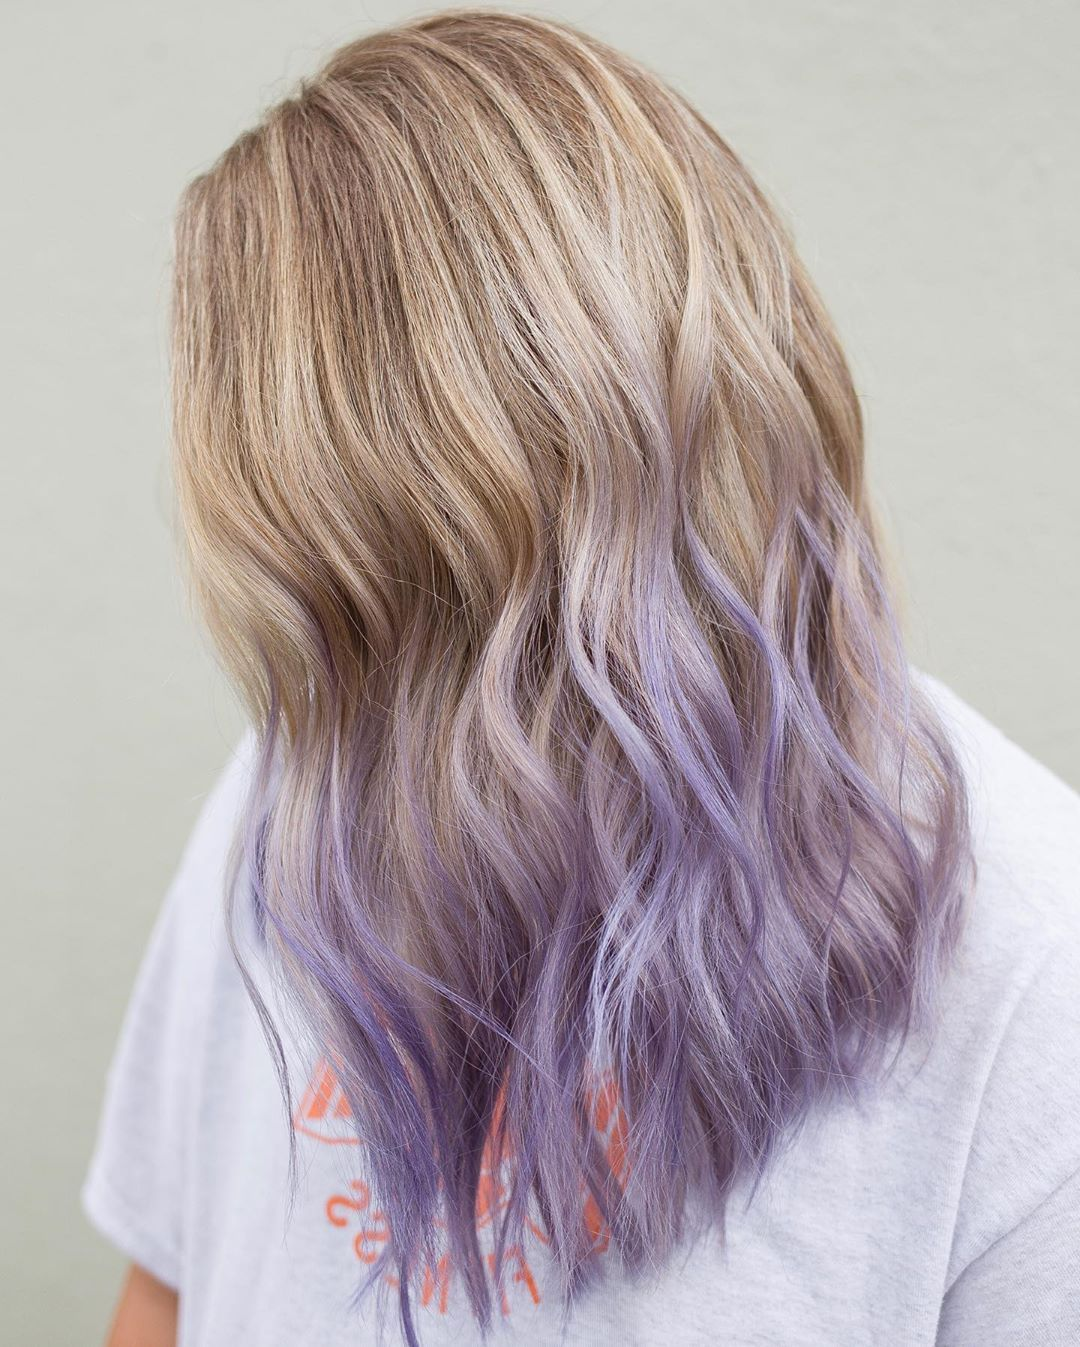 22 Stunning Purple Ombre Hair Color Ideas For 2020 In 2020 Purple Ombre Hair Blonde Hair Fade Ombre Hair Blonde